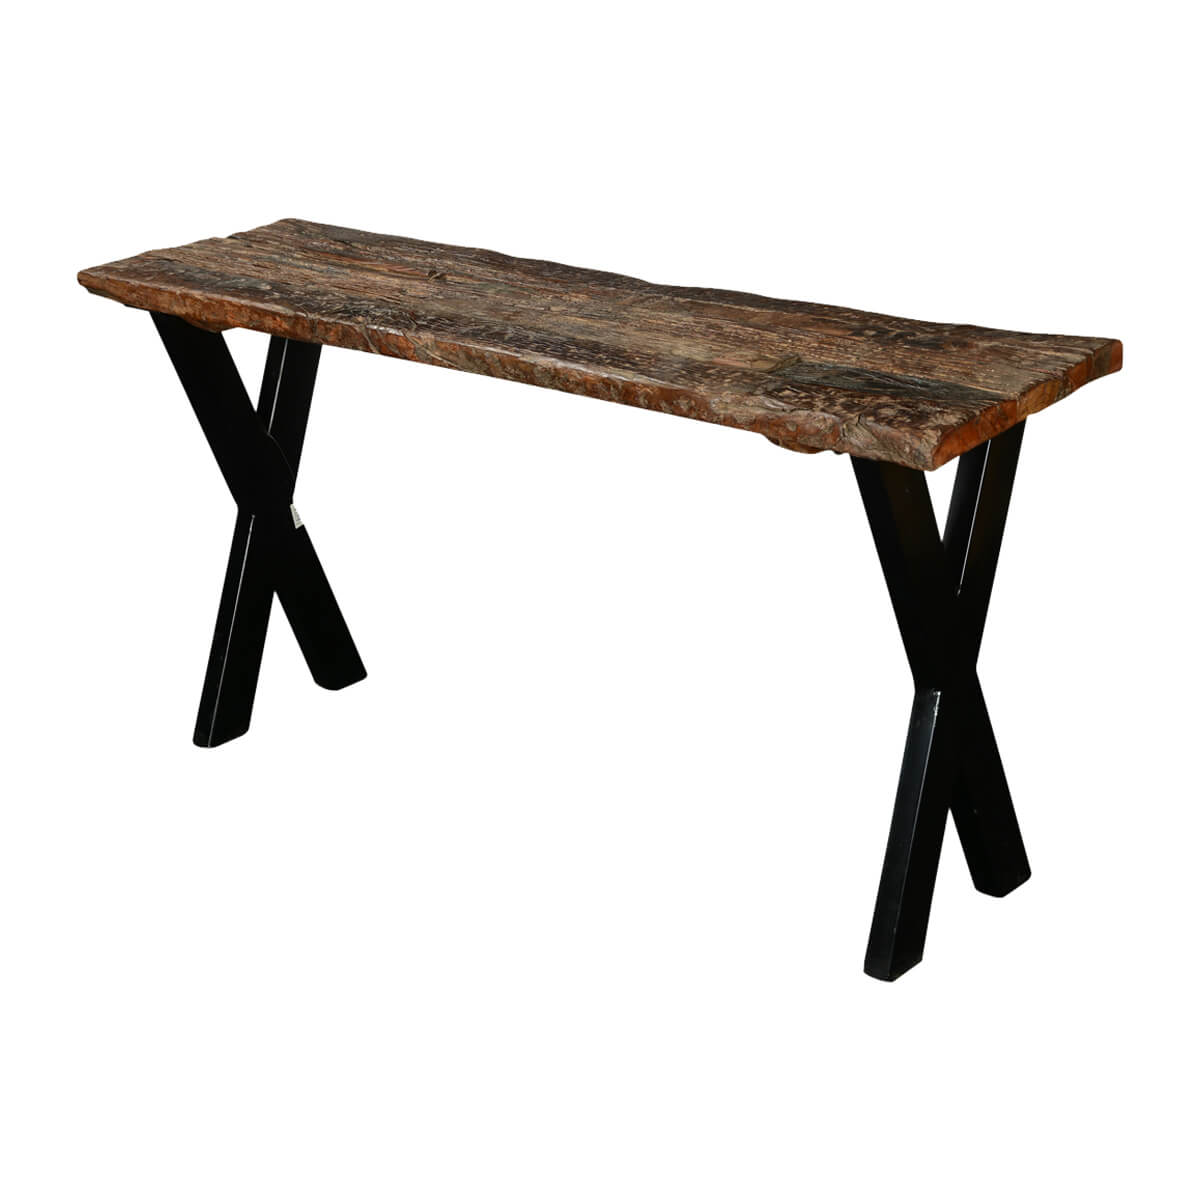 India Steamer Railroad Ties U0026 Industrial Iron 56u201d Hall Console Table